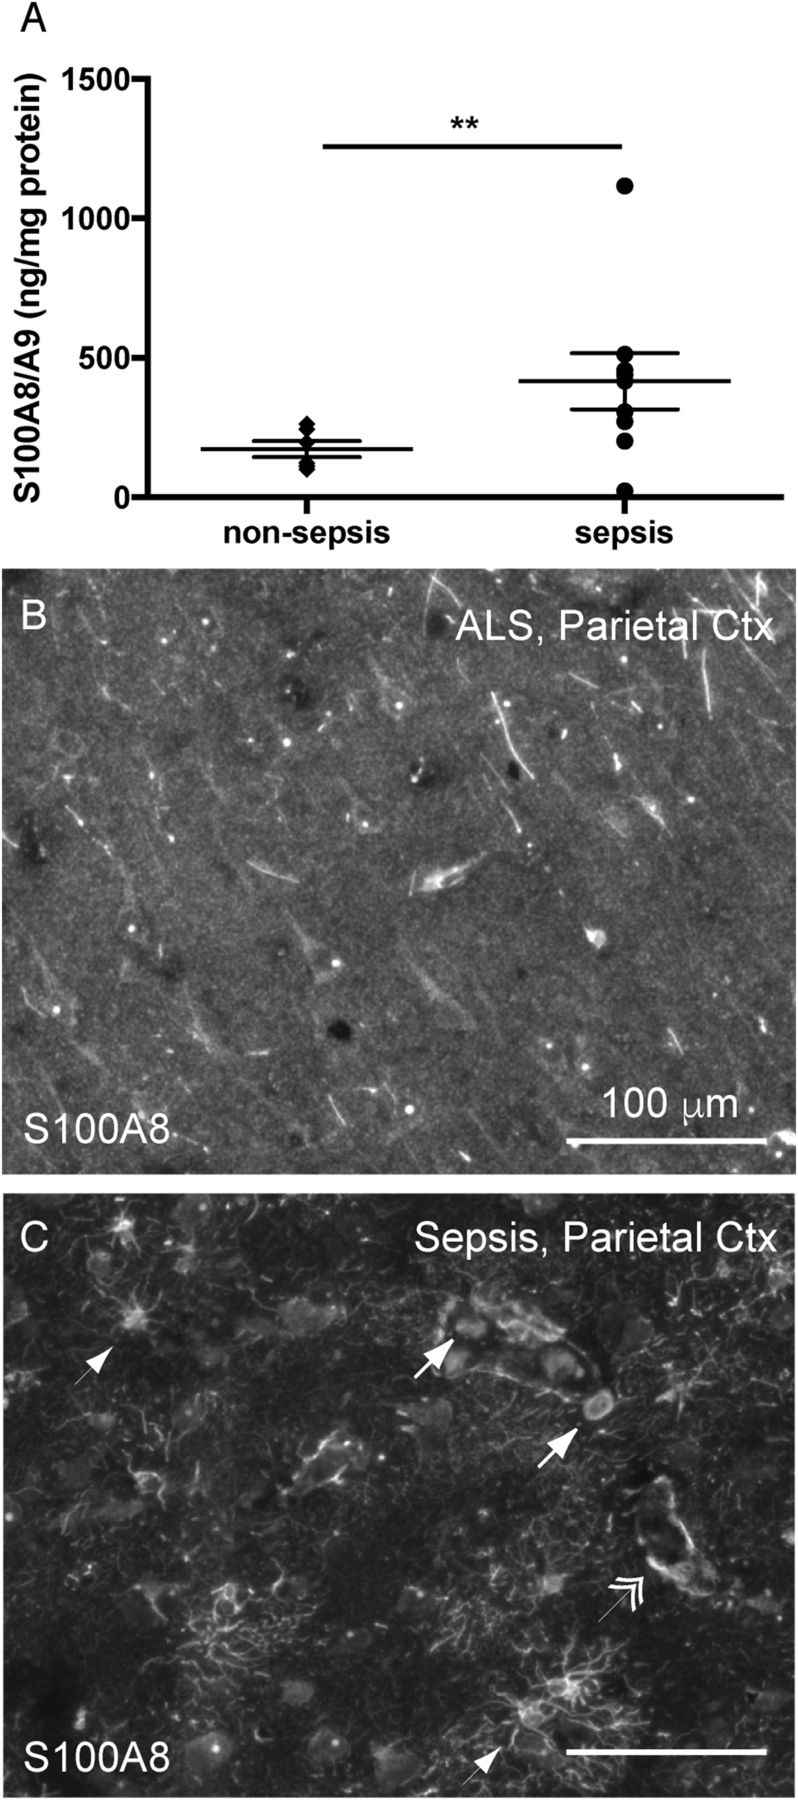 S100A8/A9 Drives Neuroinflammatory Priming and Protects